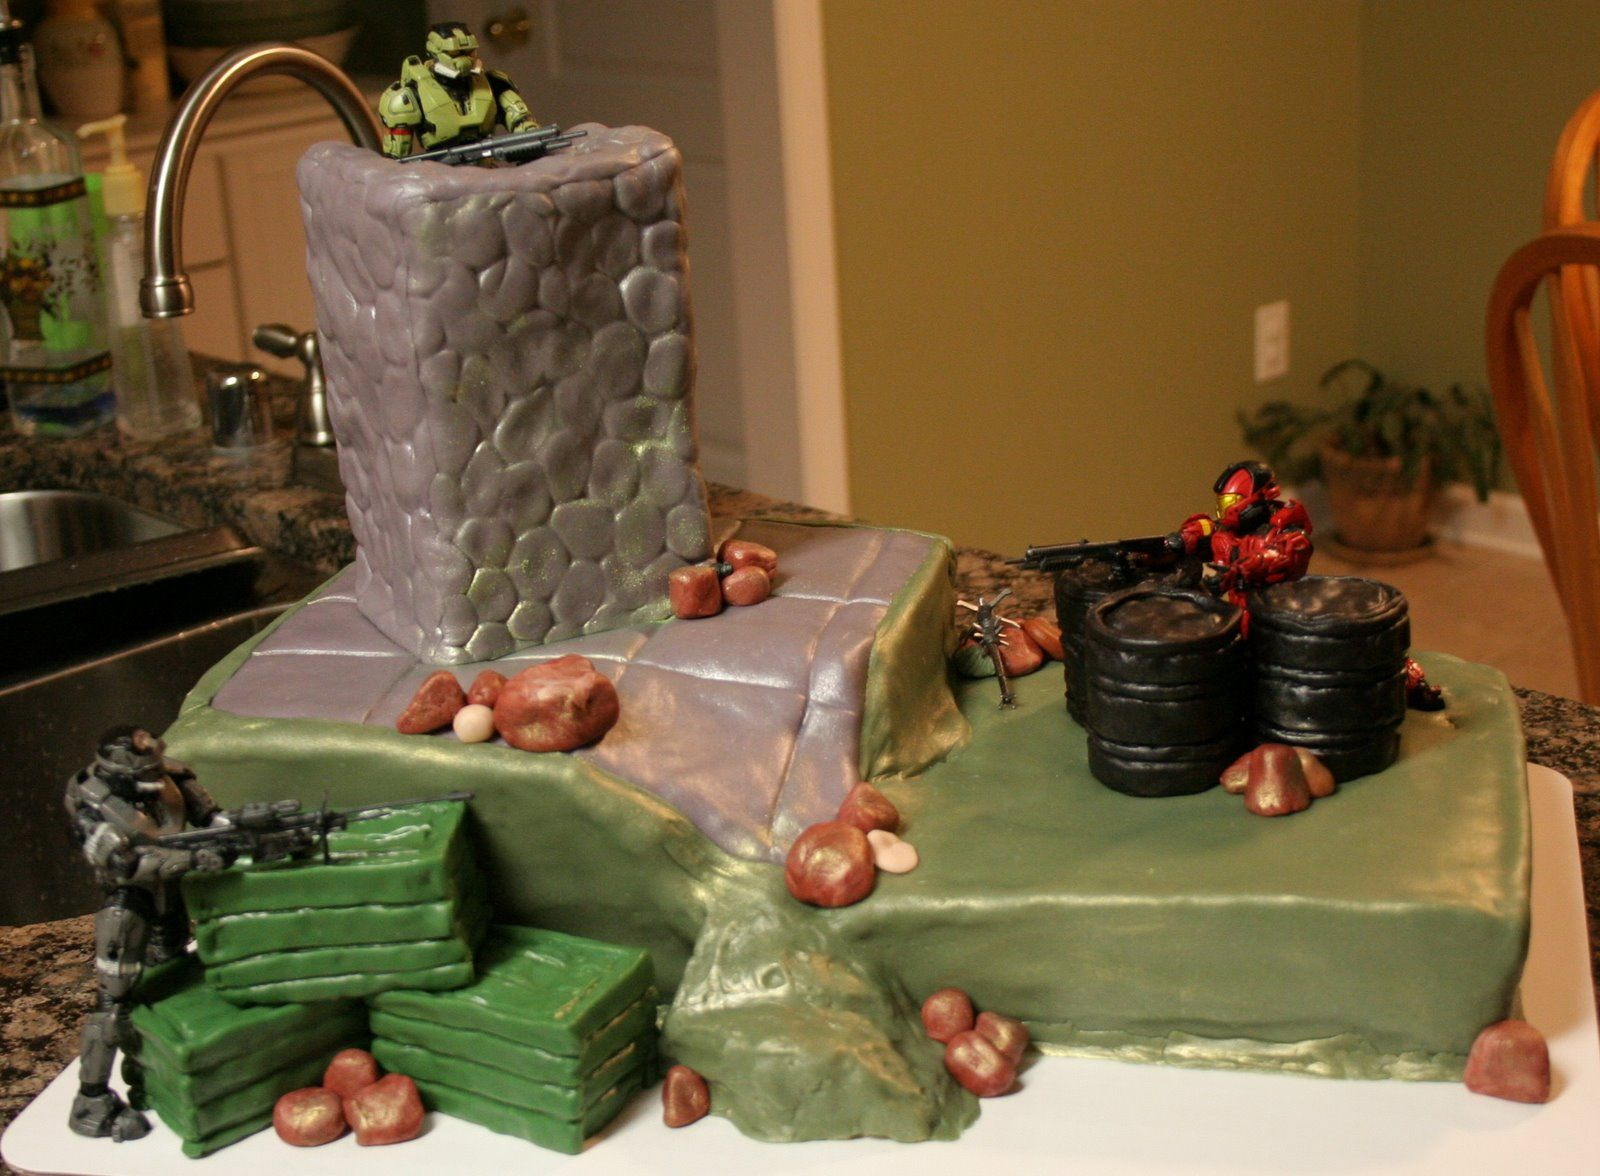 Halo cake 2 Google Image Result for httpsliceatatimefiles